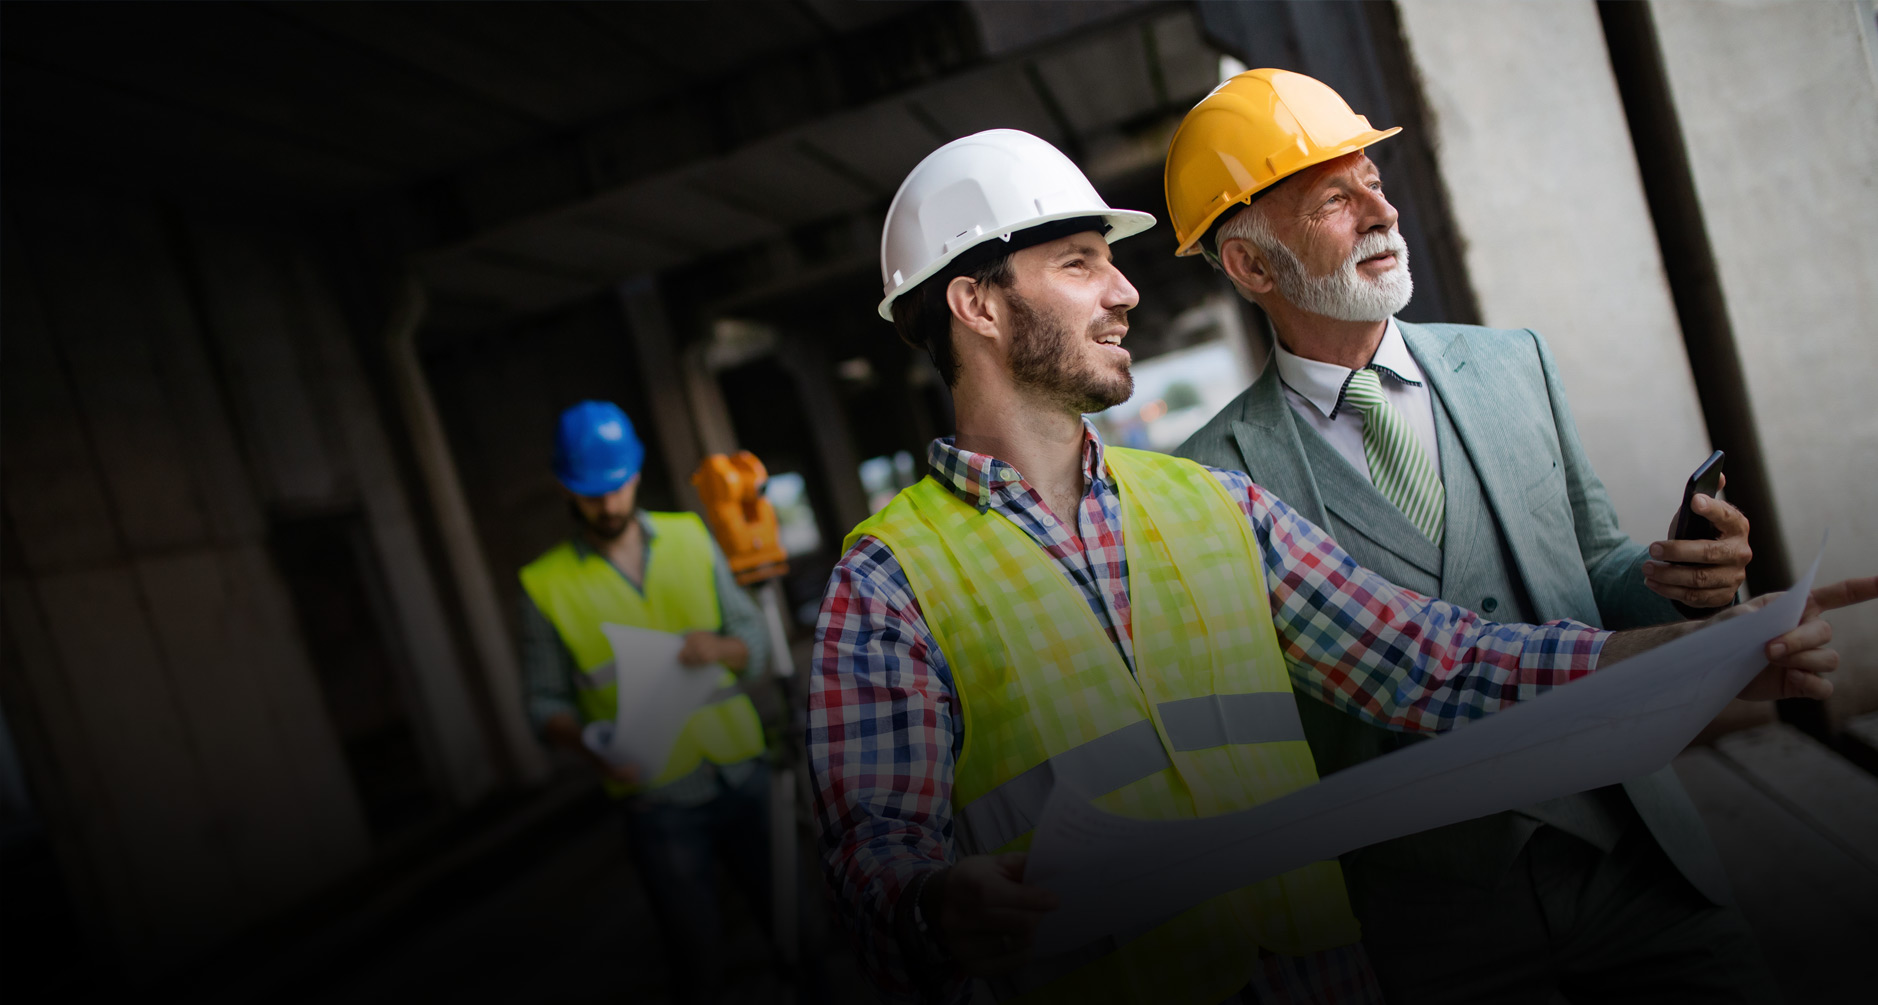 Third-Party Cyber Risks in the Construction Industry